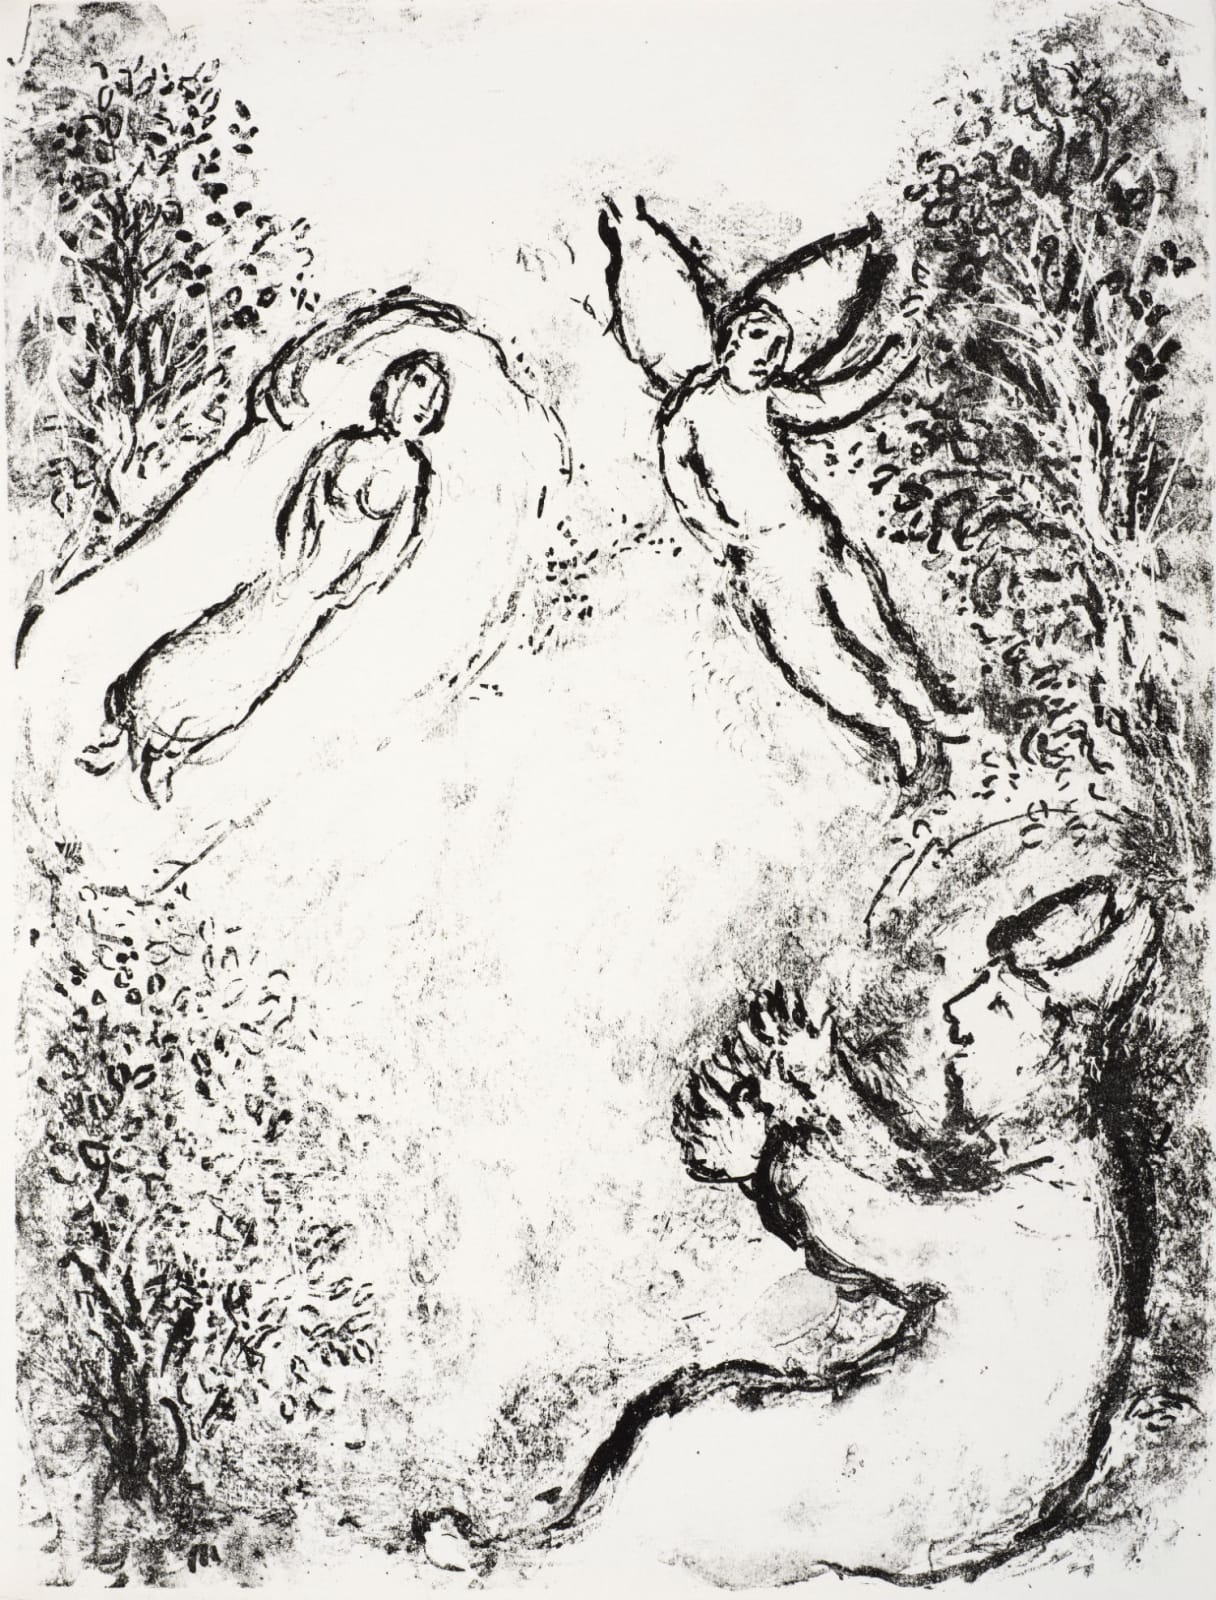 Marc Chagall (1887-1985) While Miranda sleeps, Prospero summons Ariel (Series: Shakespeare The Tempest) 1975 Lithograph 42.5 x 32.5 cm Ben Uri Collection © Marc Chagall estate To see and discover more about this artist click here